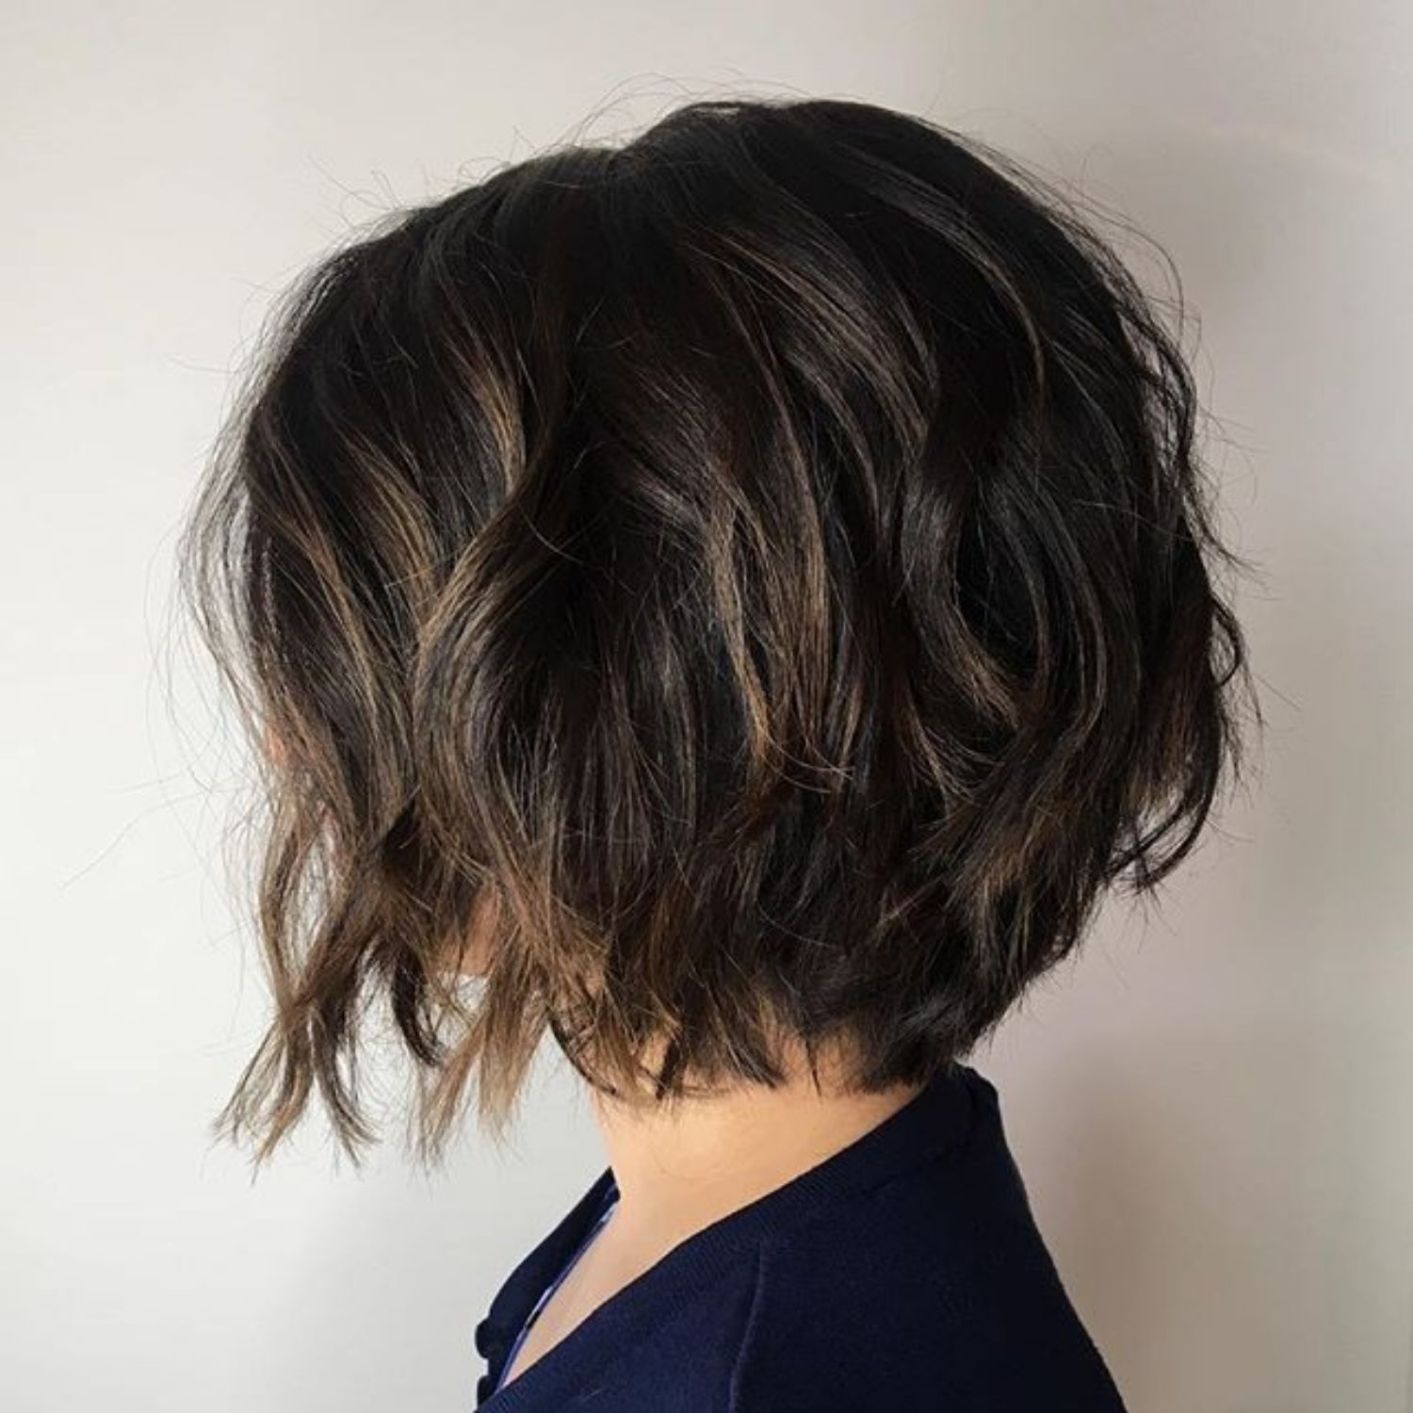 60 Classy Short Haircuts And Hairstyles For Thick Hair In 2020 Choppy Bob Hairstyles Thick Hair Styles Bob Hairstyles